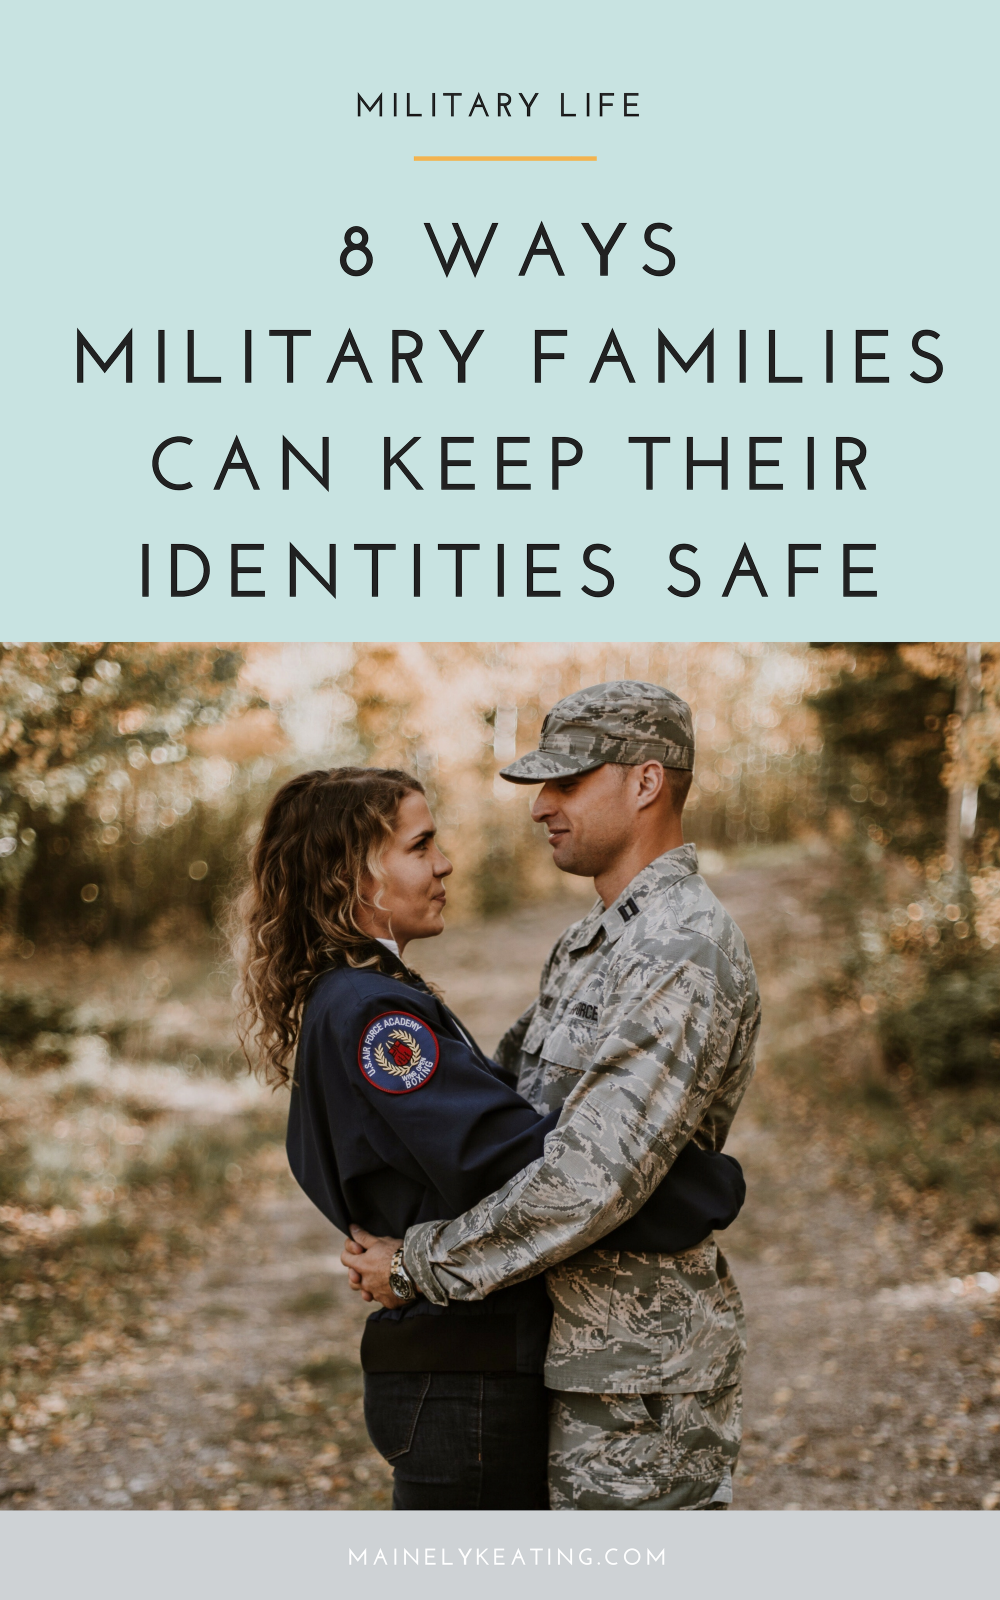 8 Ways Military Families Can Keep Their Identities Safe